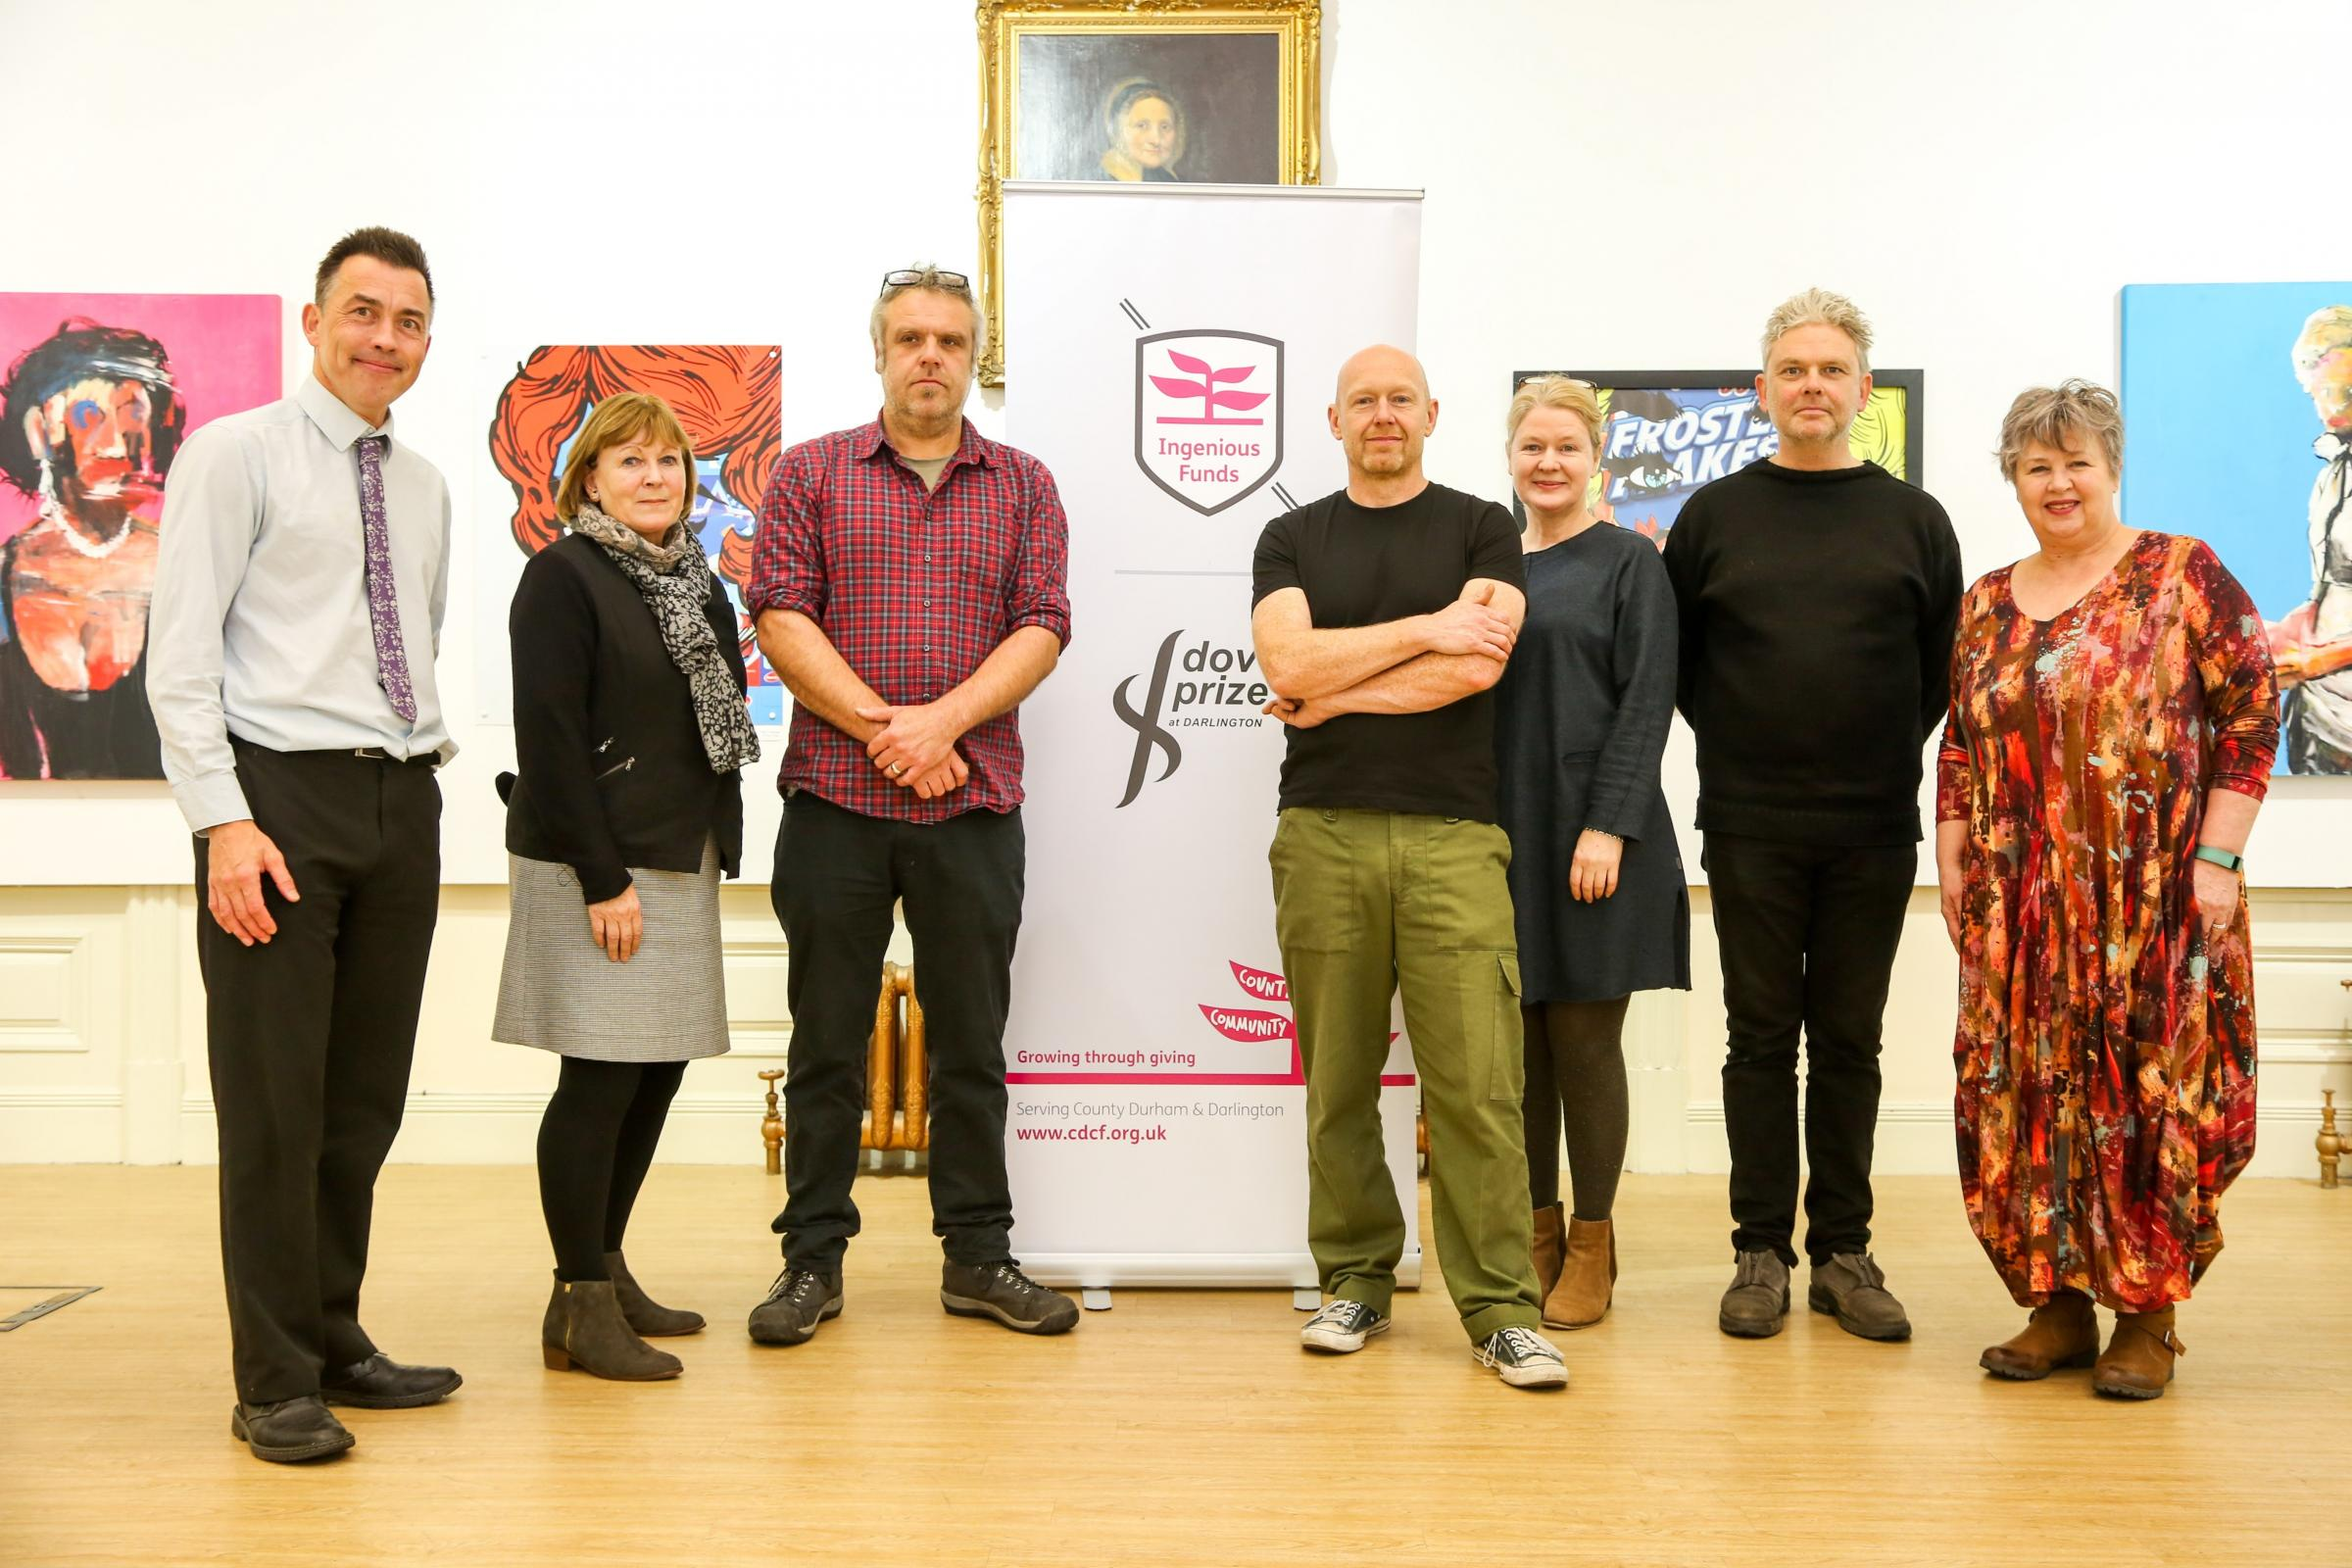 London-based artists Shaun Doyle and Mally Mallinson have been awarded County Durham Community Foundation's Dover Prize 2016. Pictured are Stephen Wiper, Lesley Taylor, Mally Mallinson, Shaun Doyle, Jane Tarr, Greville Worthington and Barbara Guvvins. P